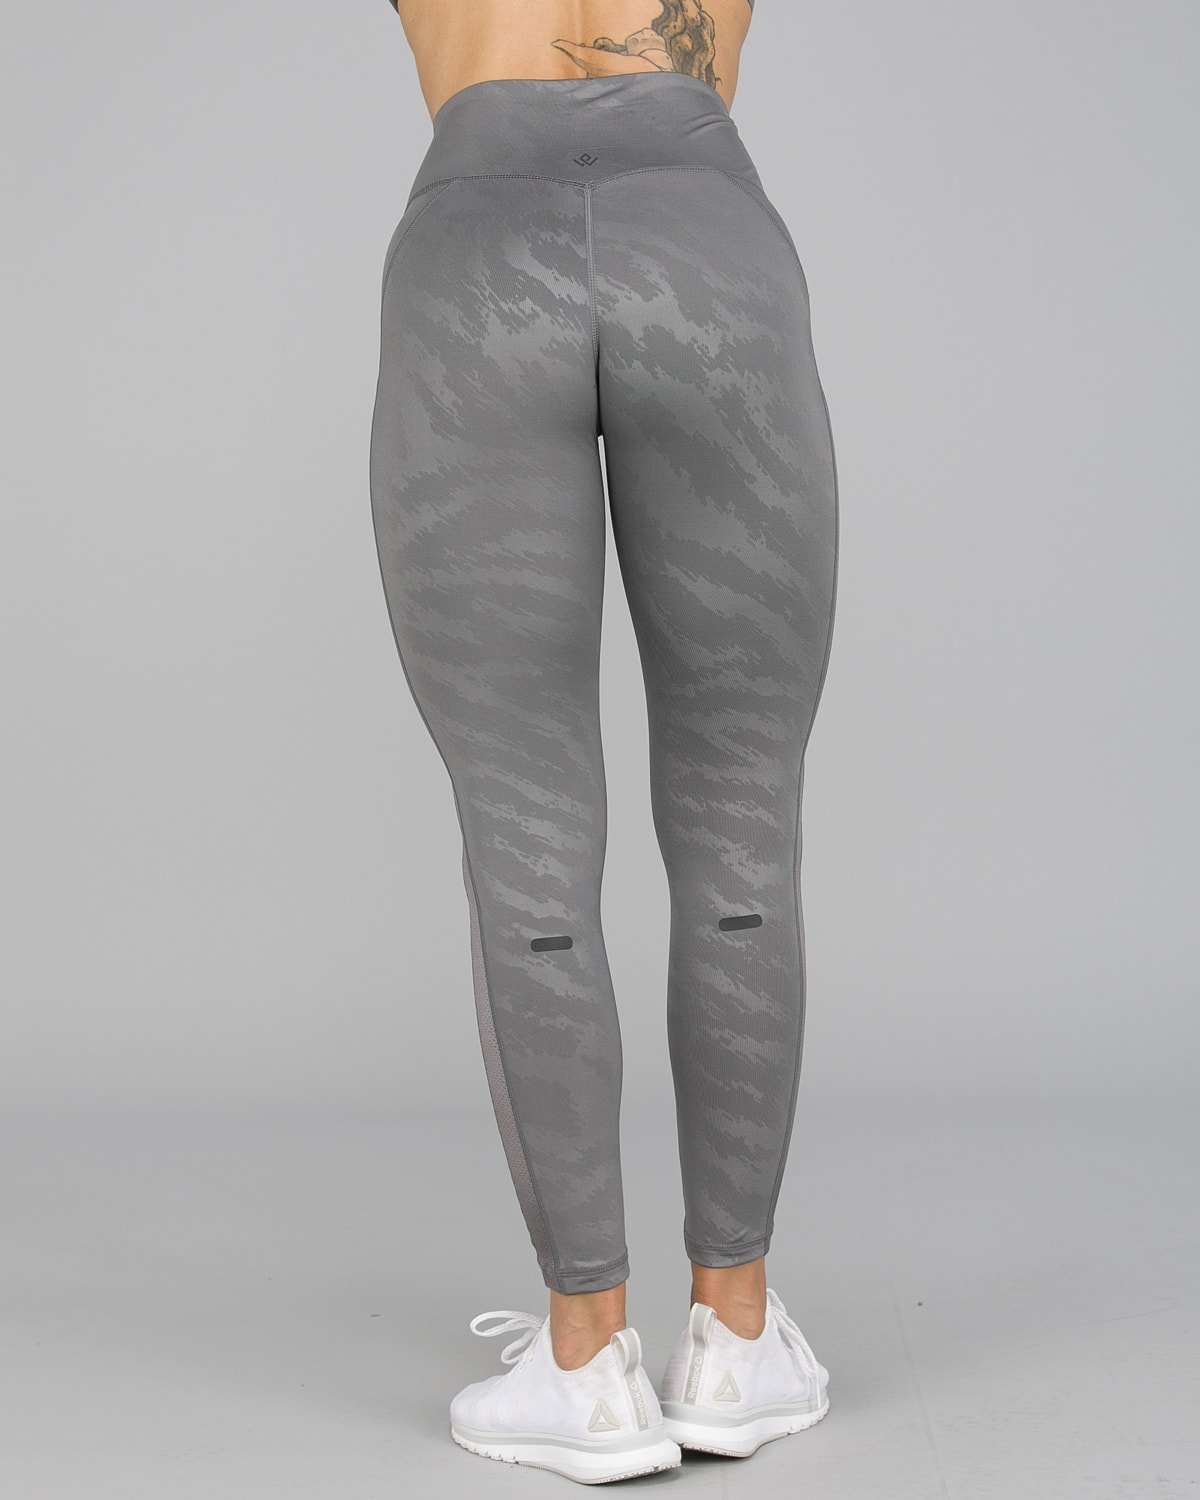 Workout Empire – Elevate Leggings – Silver4